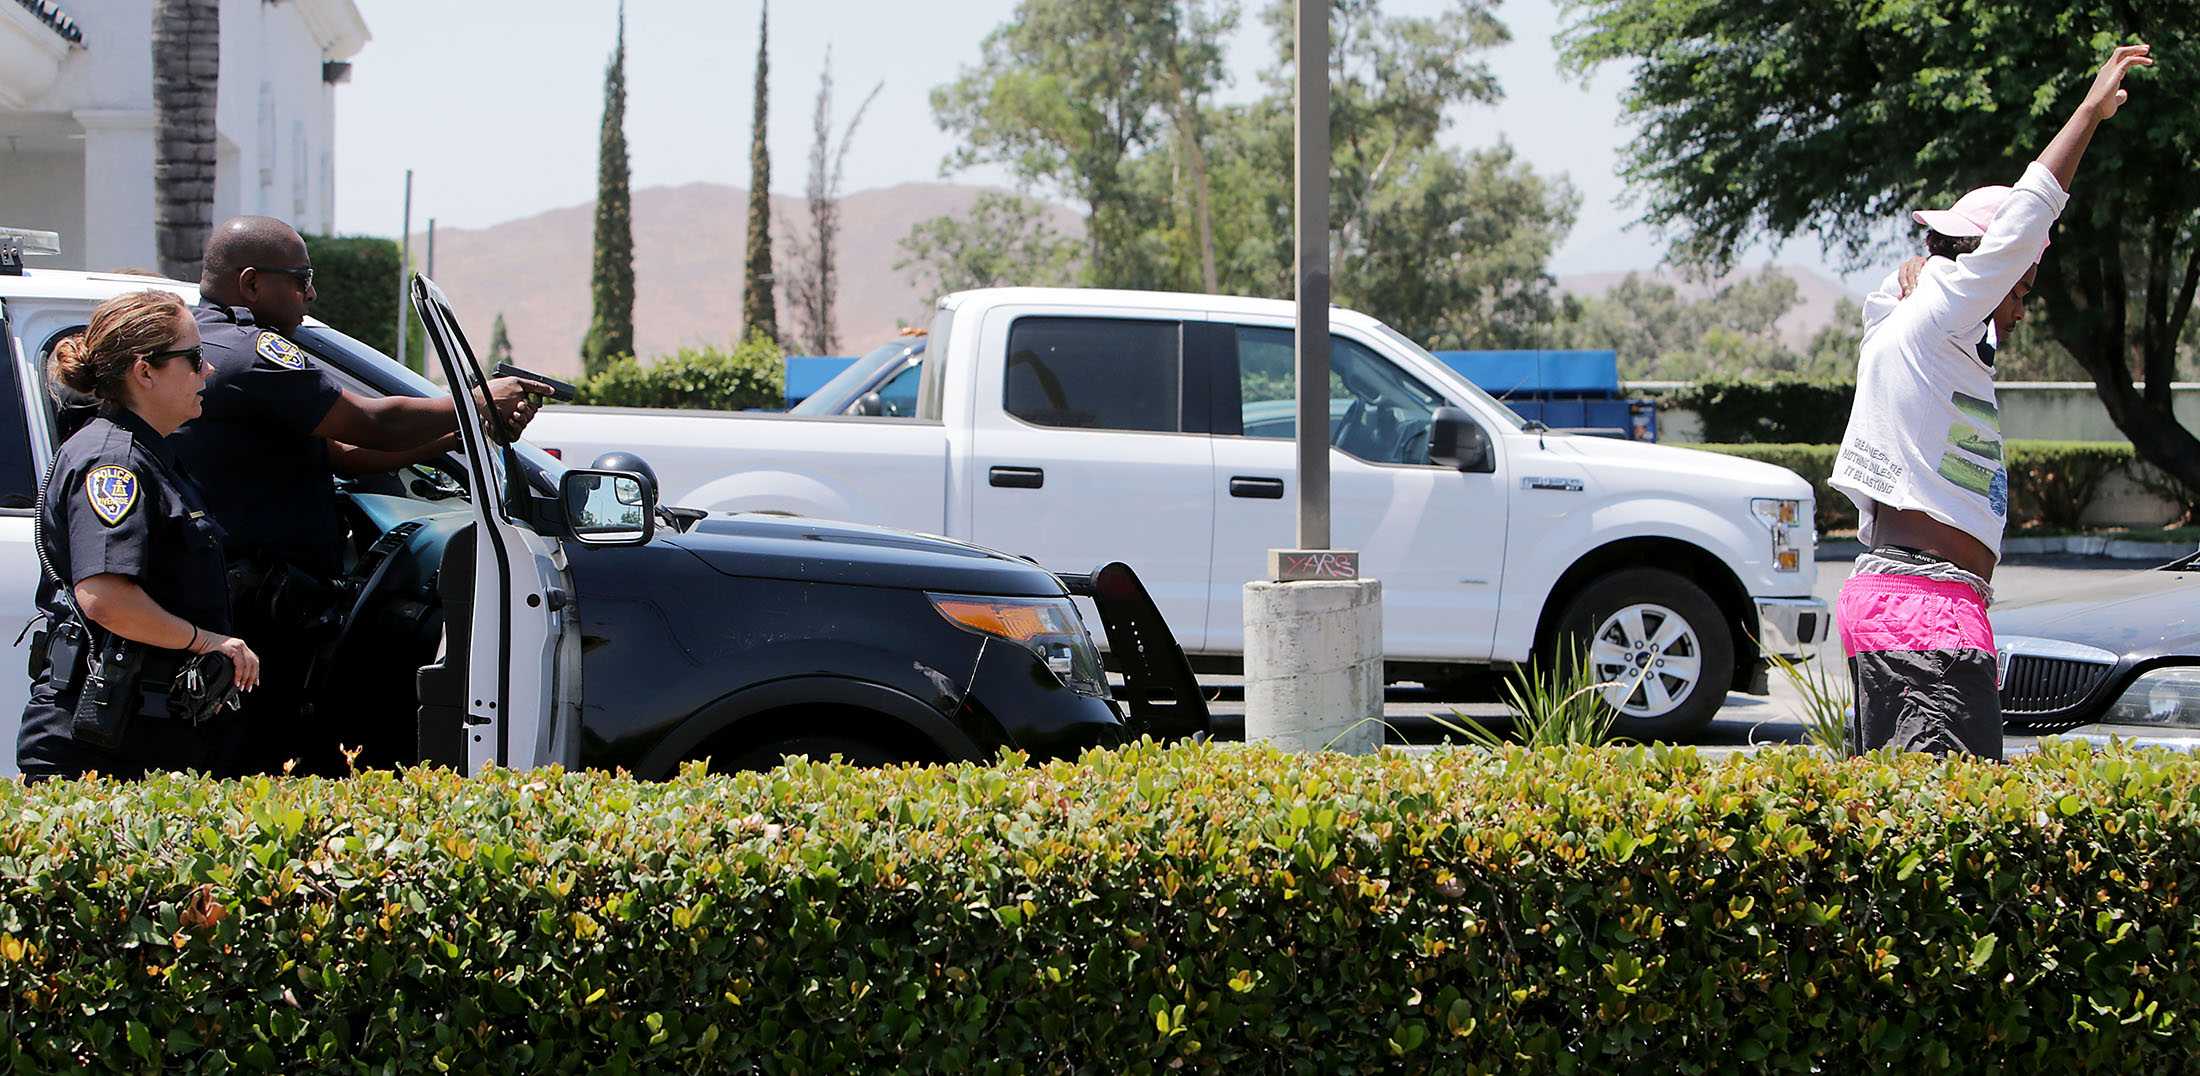 Riverside police officers with guns drawn have a suspect walk backwards to them after he and three others were ordered to leave a black sedan at gun point in the parking lot of Bakers restaurant on Main Street south of the east bound 60fwy off ramp around 1:40p.m. Tuesday in Riverside, CA. July 11, 2017. TERRY PIERSON,THE PRESS-ENTERPRISE/SCNG